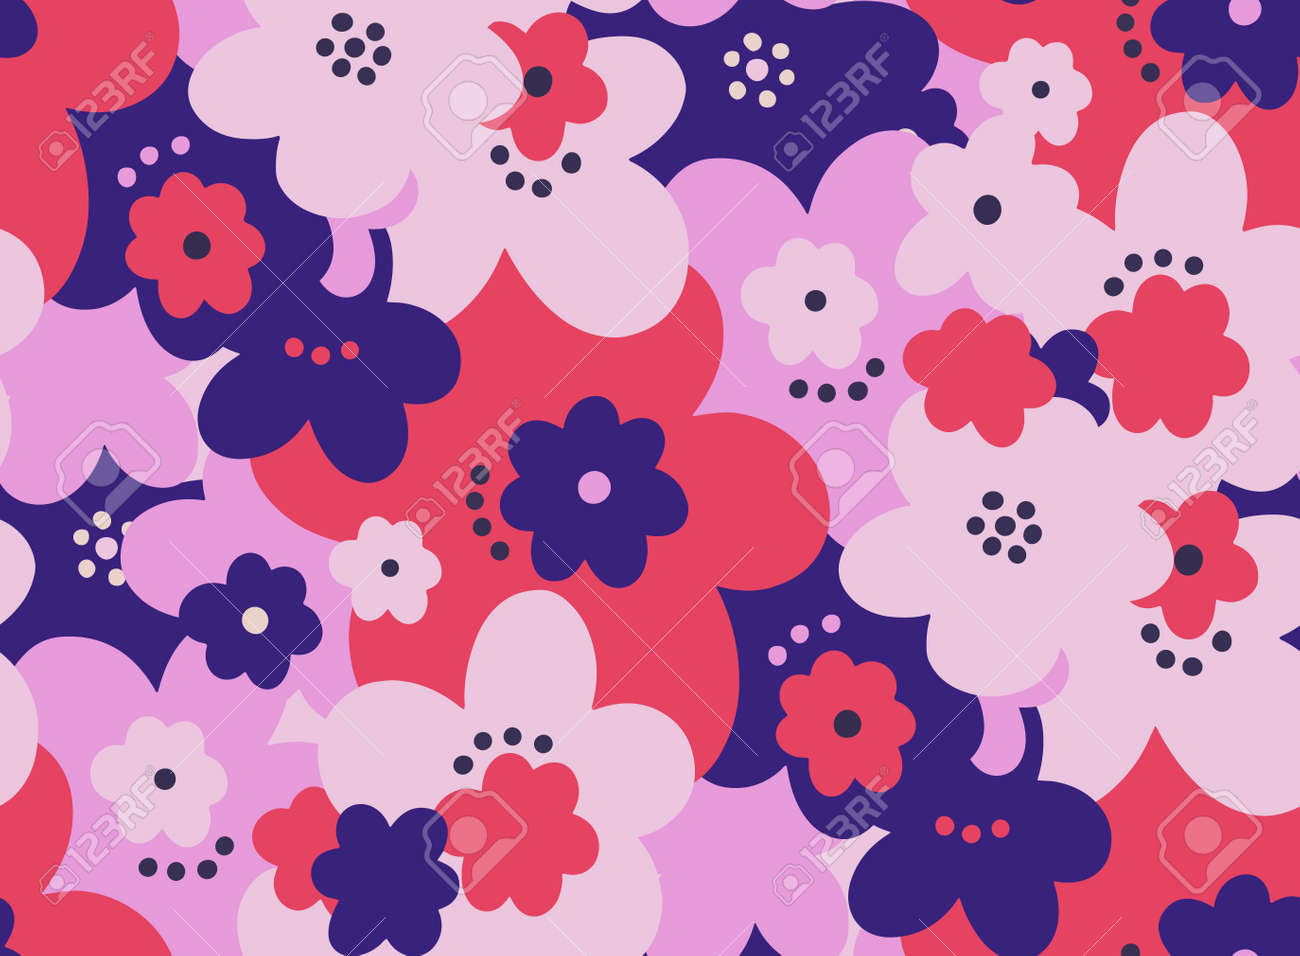 Seamless pattern floral flower abstract.Botanical vintage nature background.Print fashion textile. - 171303271